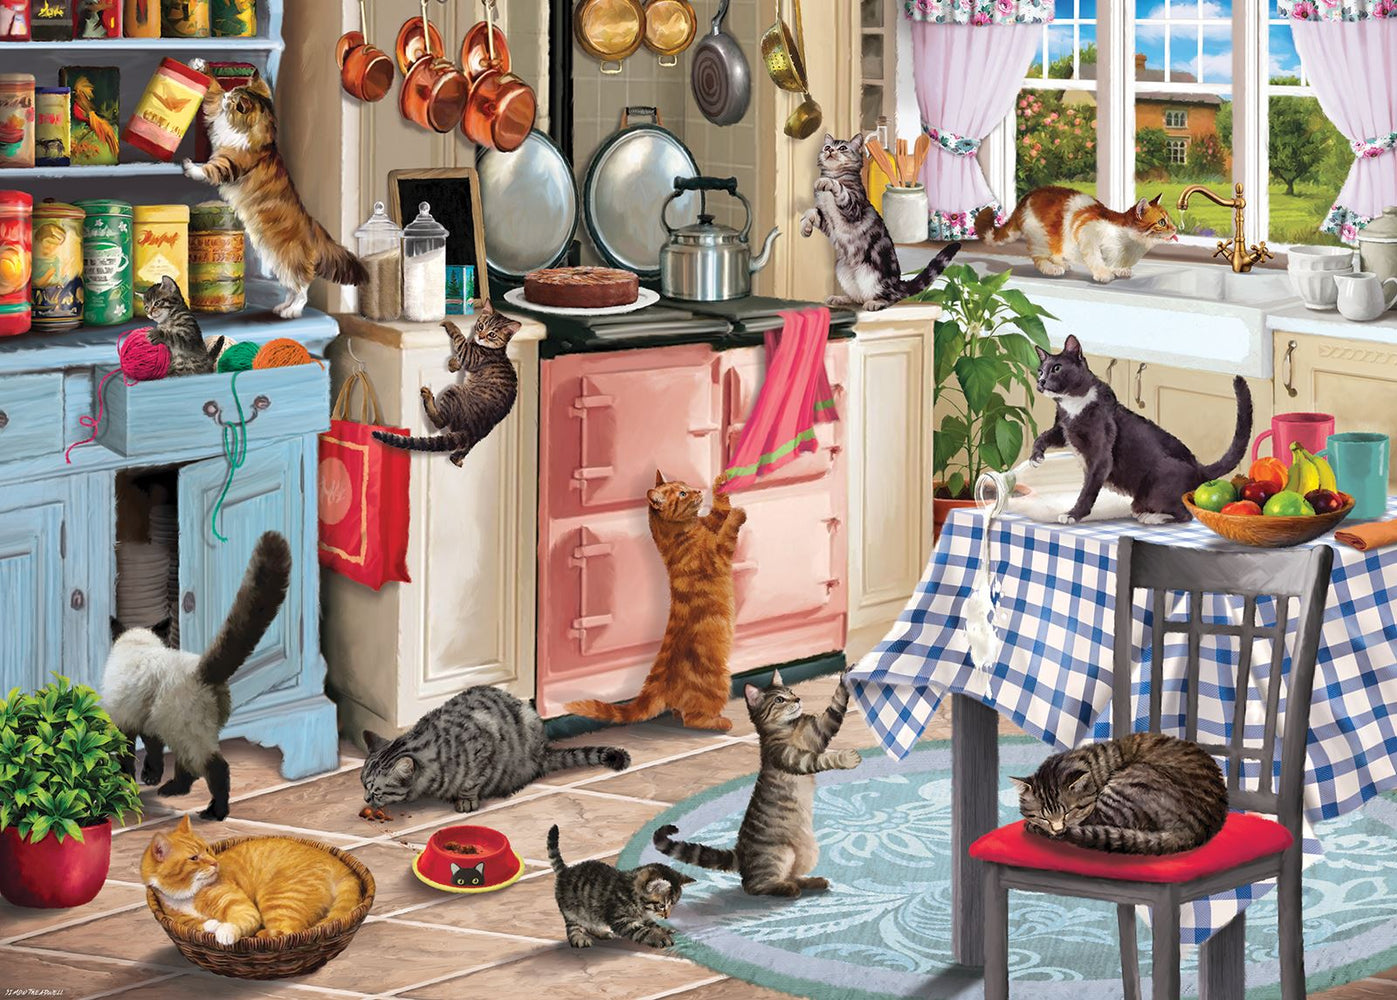 Cats In The Kitchen 1000 Piece Jigsaw